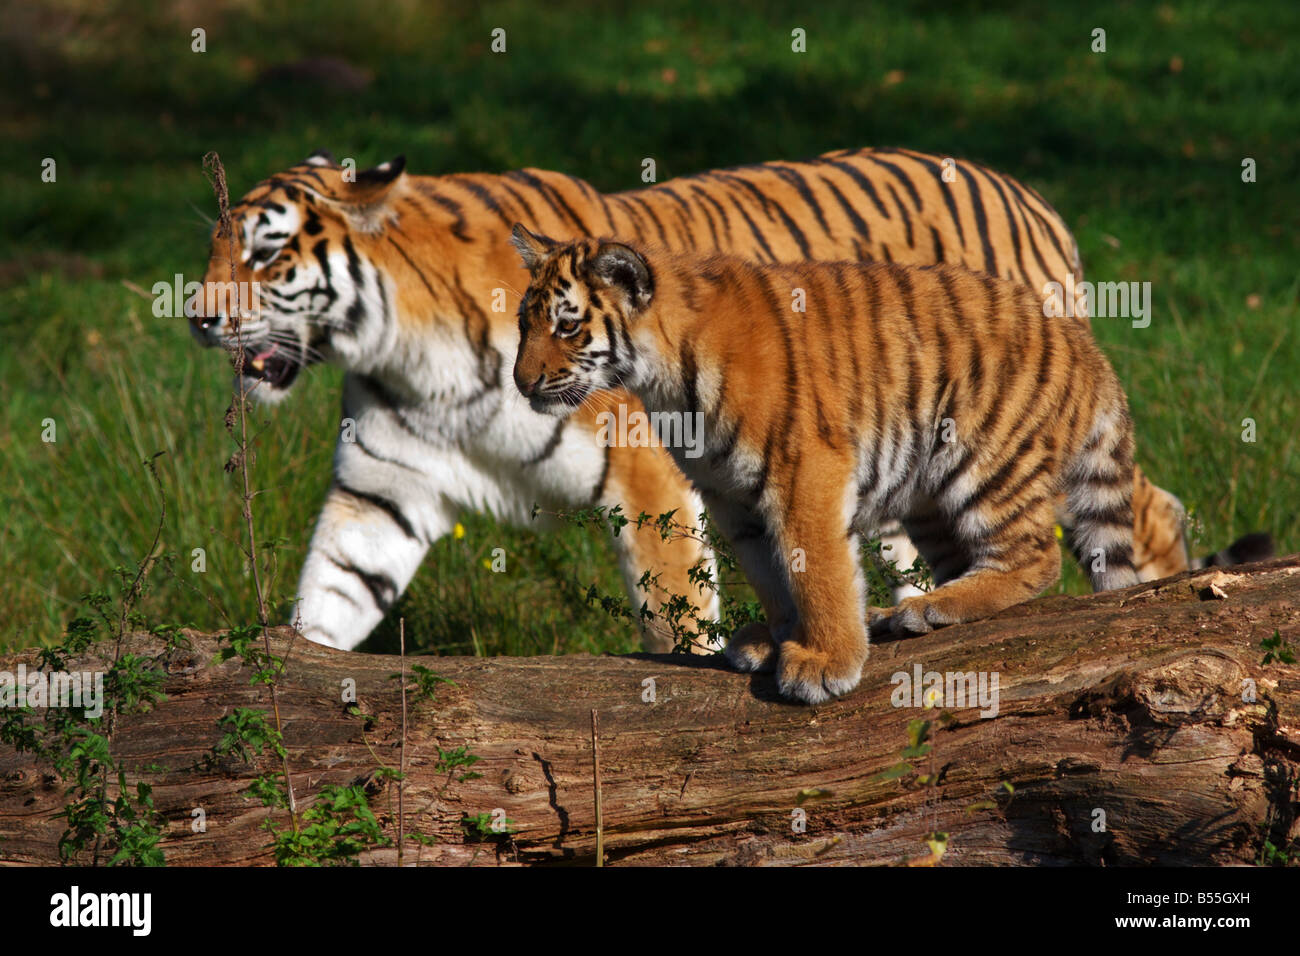 Siberian tiger with cub walking beside each other - Stock Image